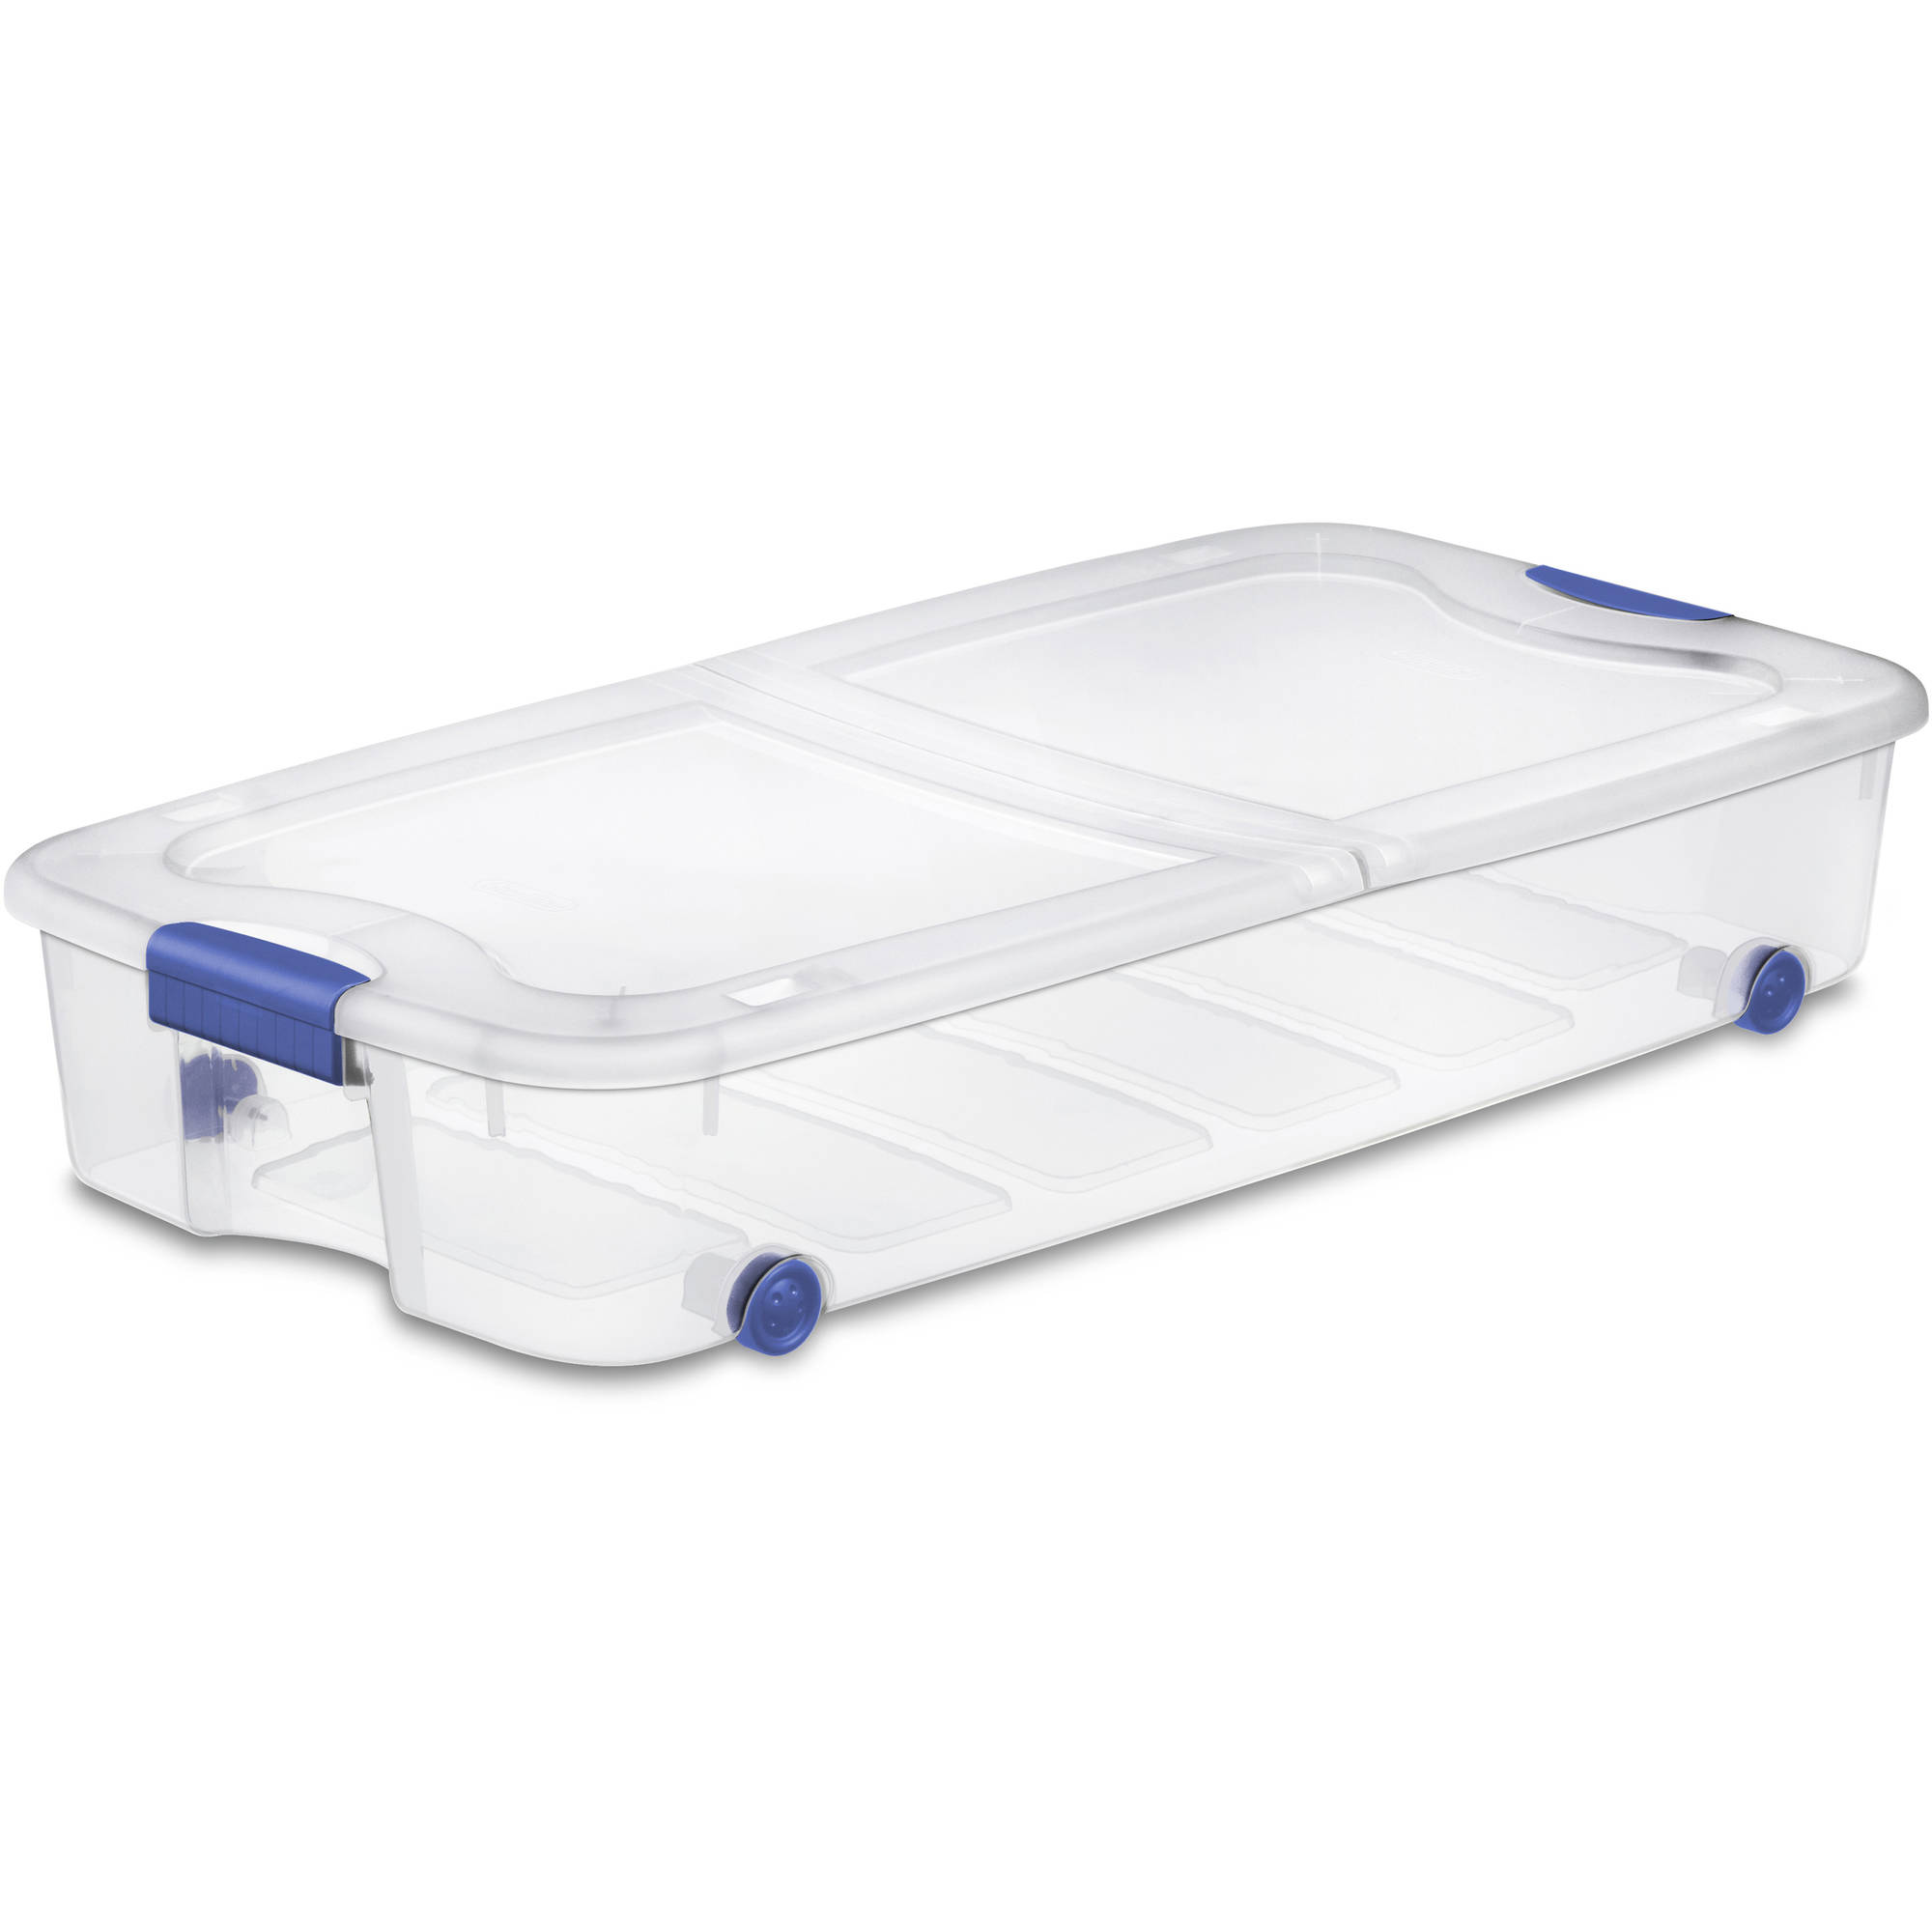 Hefty 32 Quart Hi rise Latching Container Clear Walmartcom